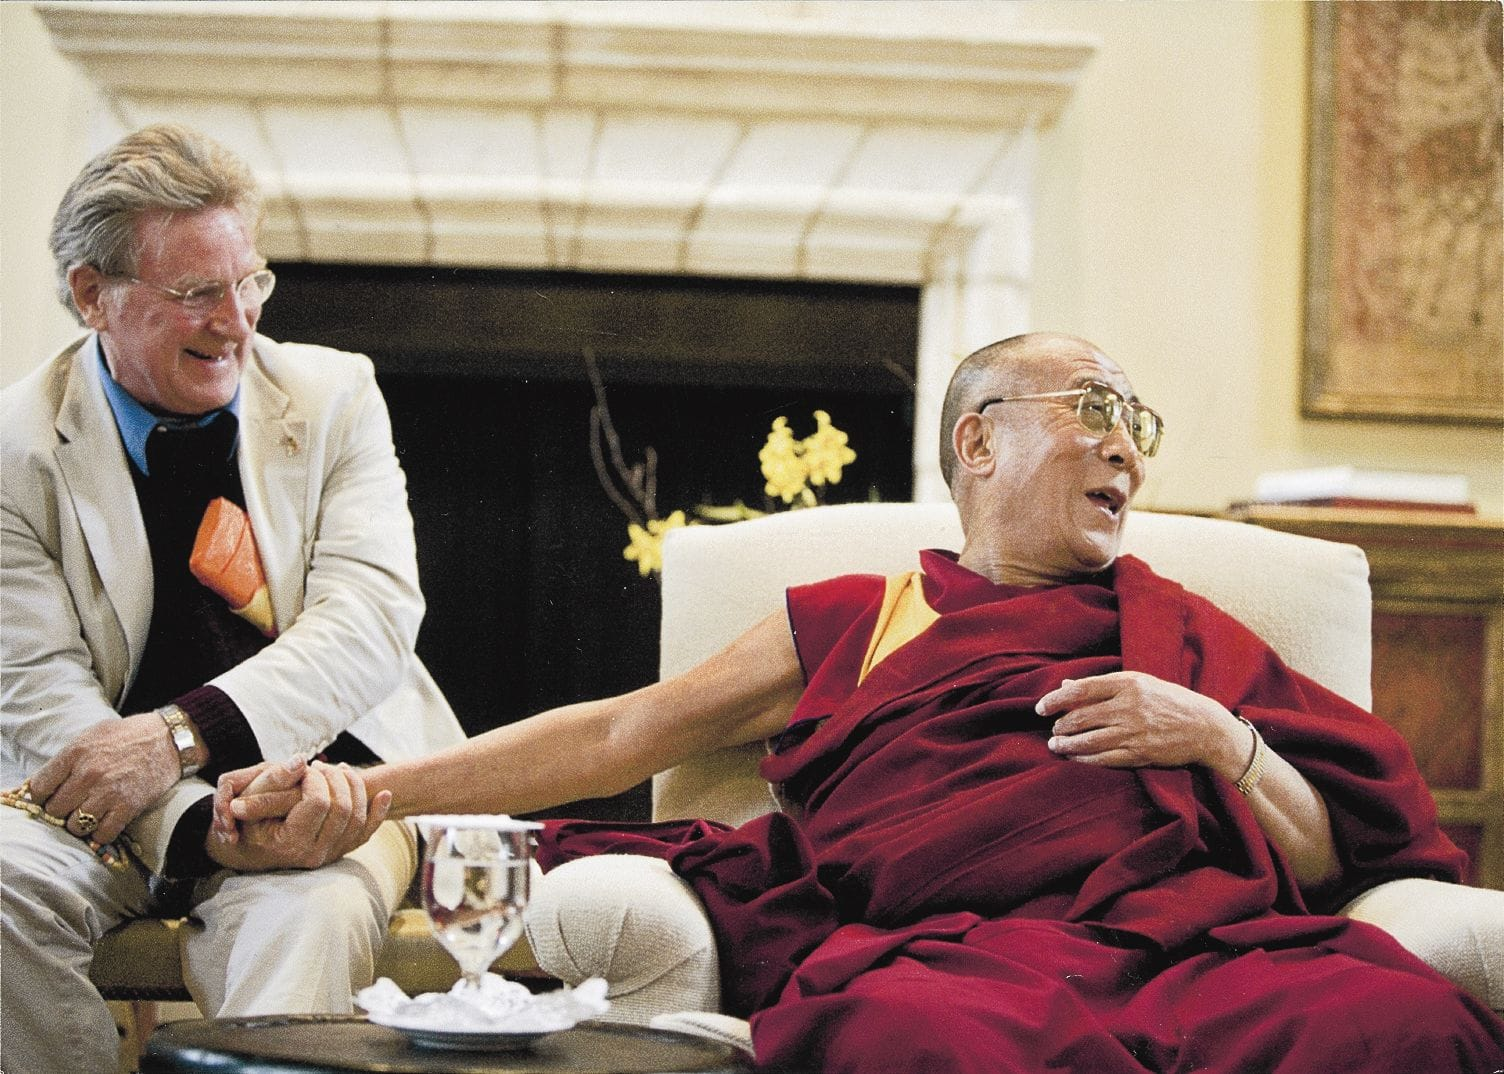 Robert Thurman the Dalai Lama